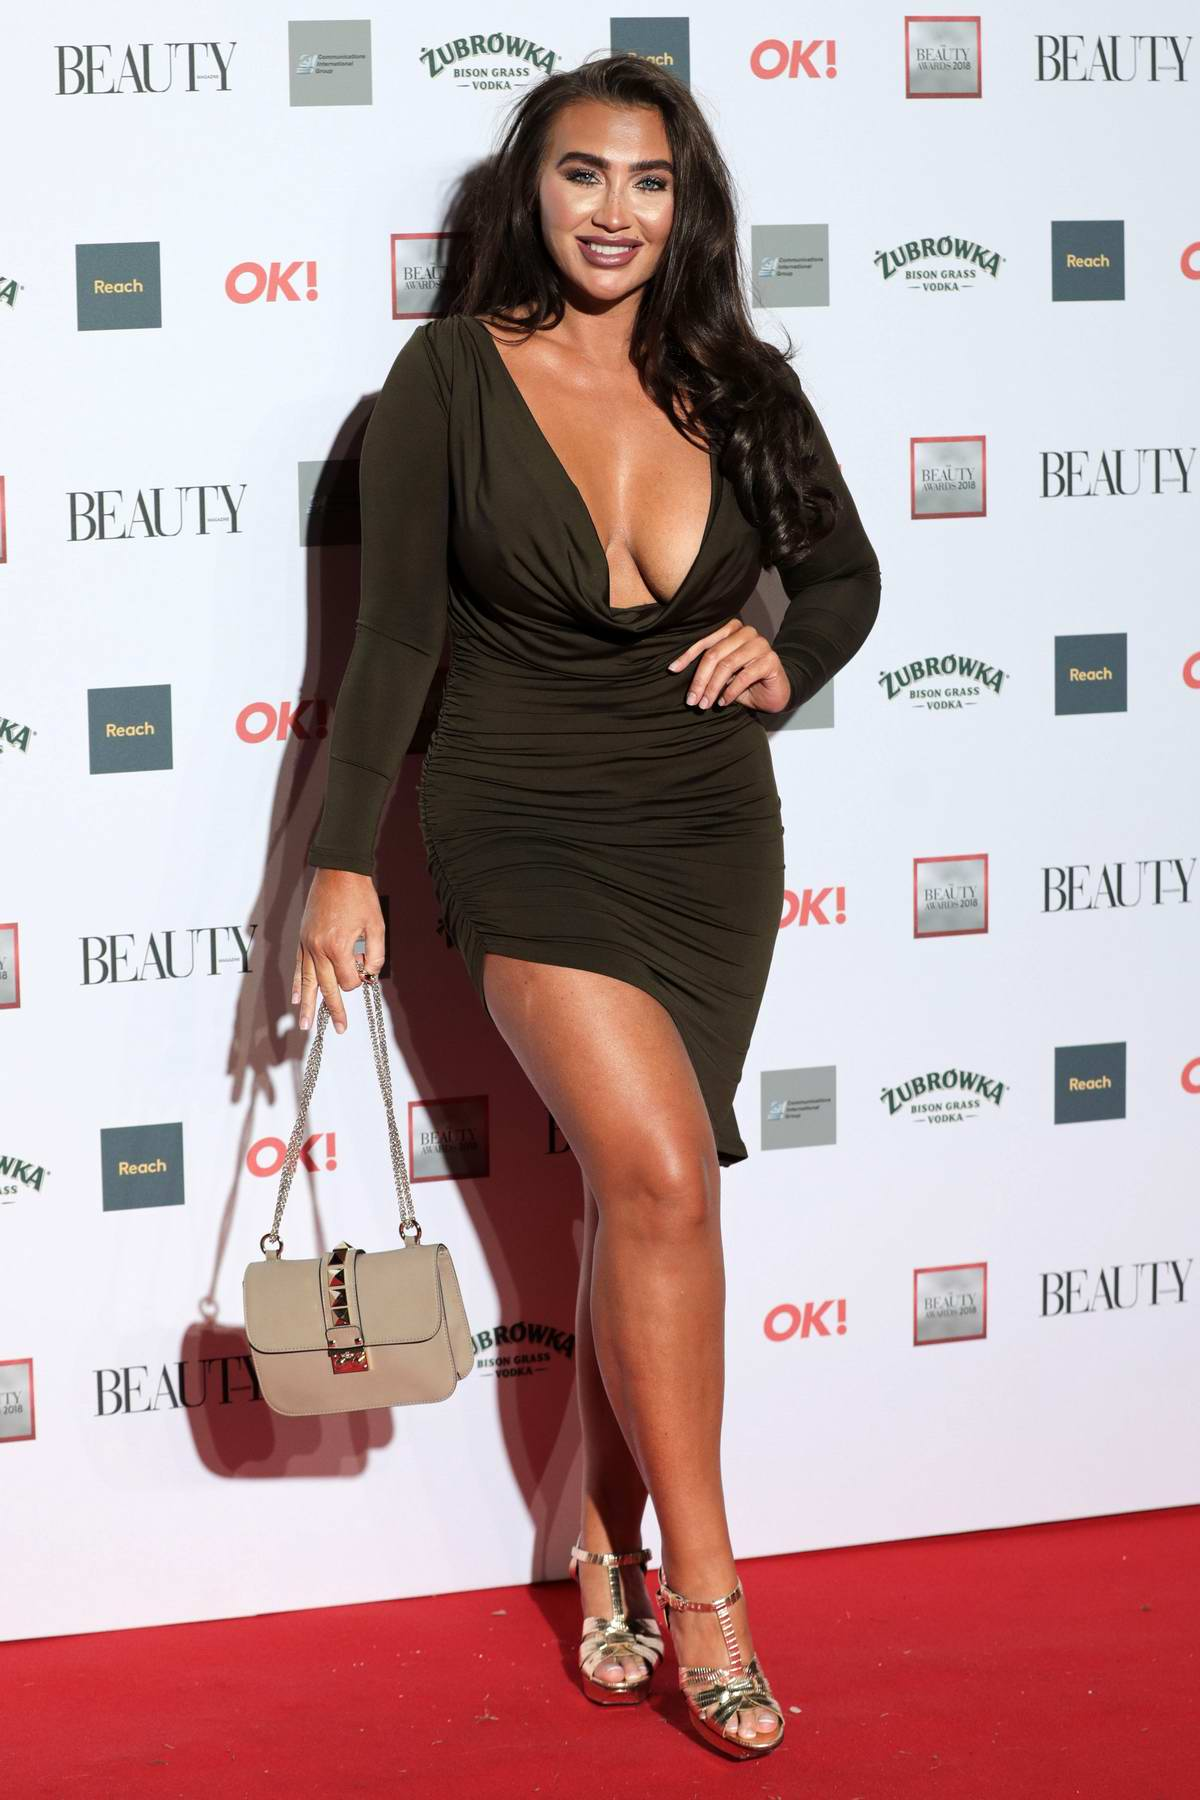 Lauren Goodger attends the OK! Beauty Awards at Park Plaza Westminster Bridge in London, UK